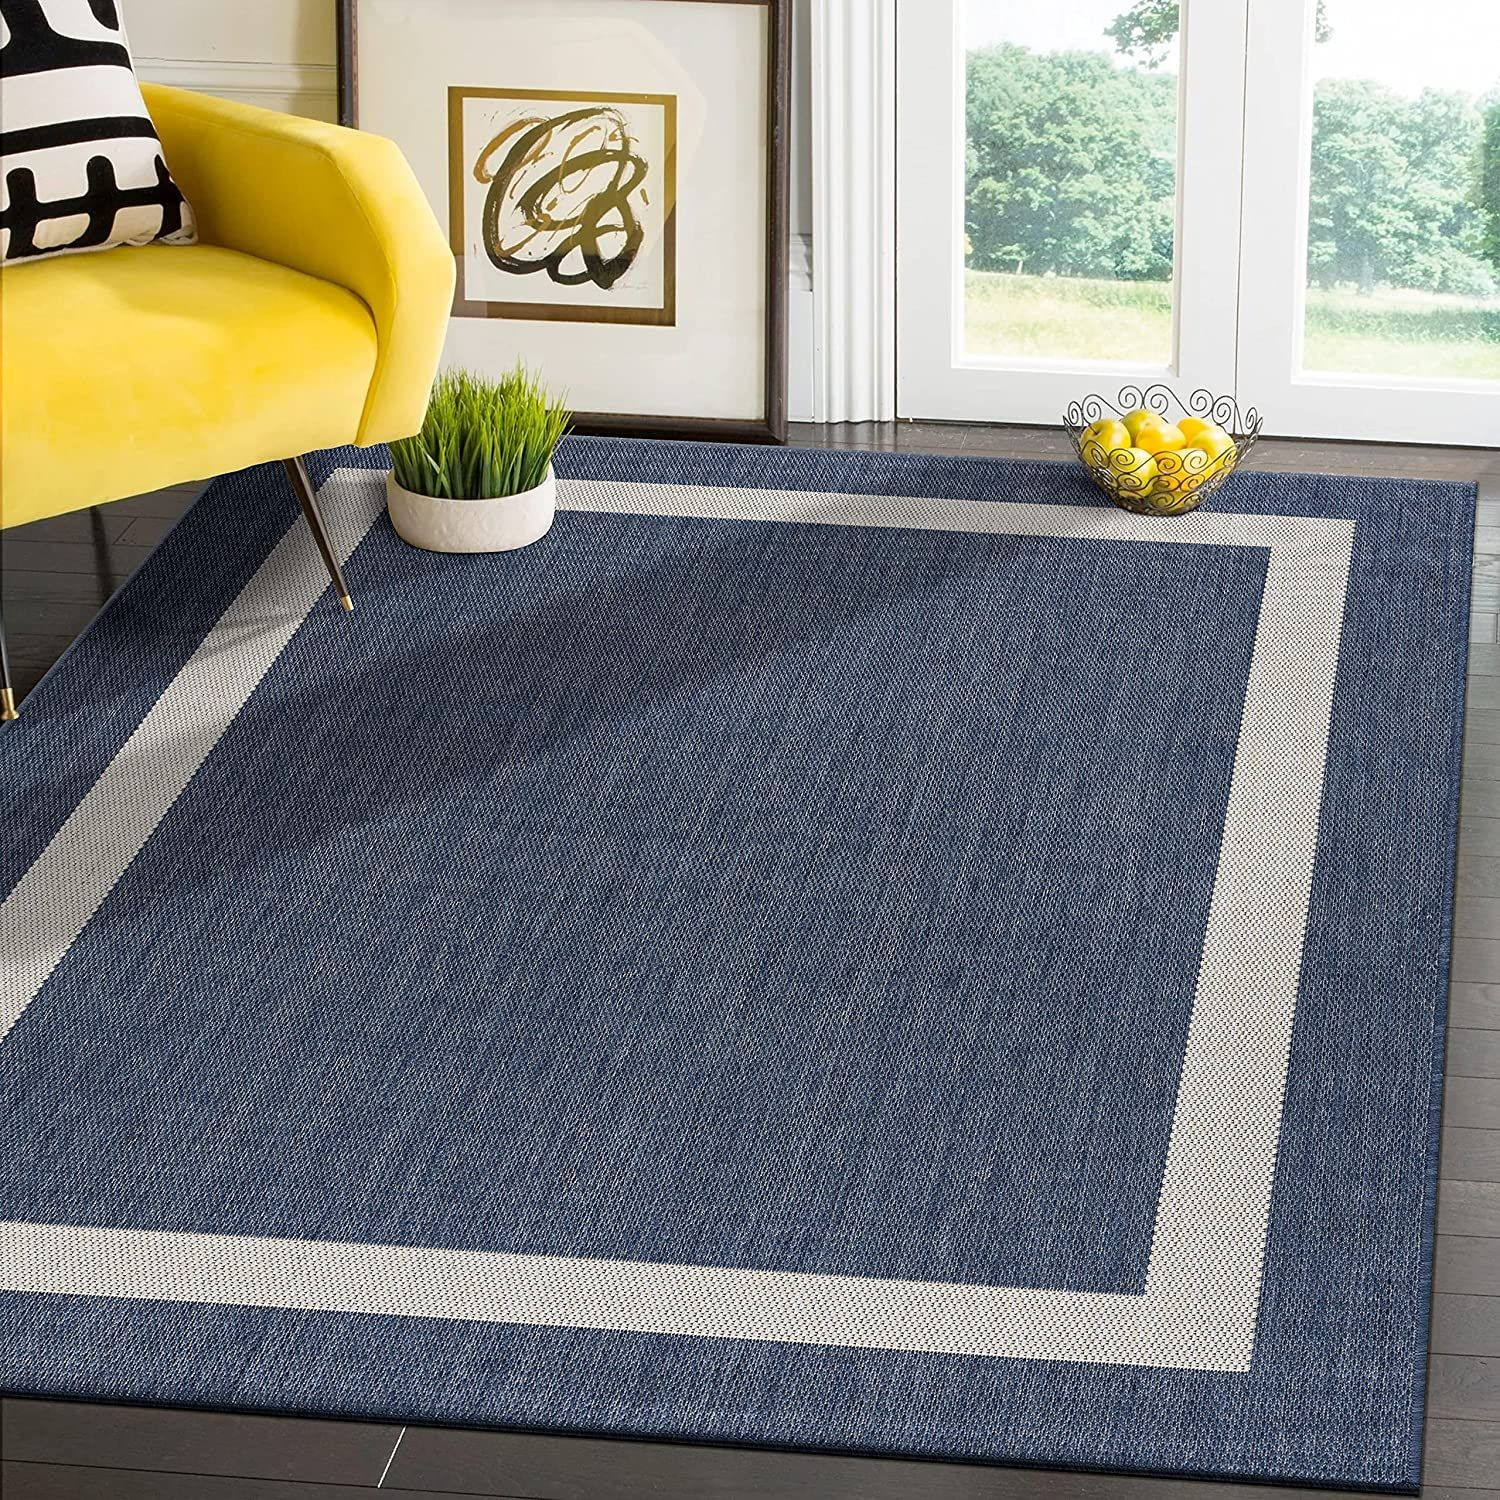 Modern Area Rugs for Indoor/ Outdoor Bordered   Blue / White   6x9 Gallery